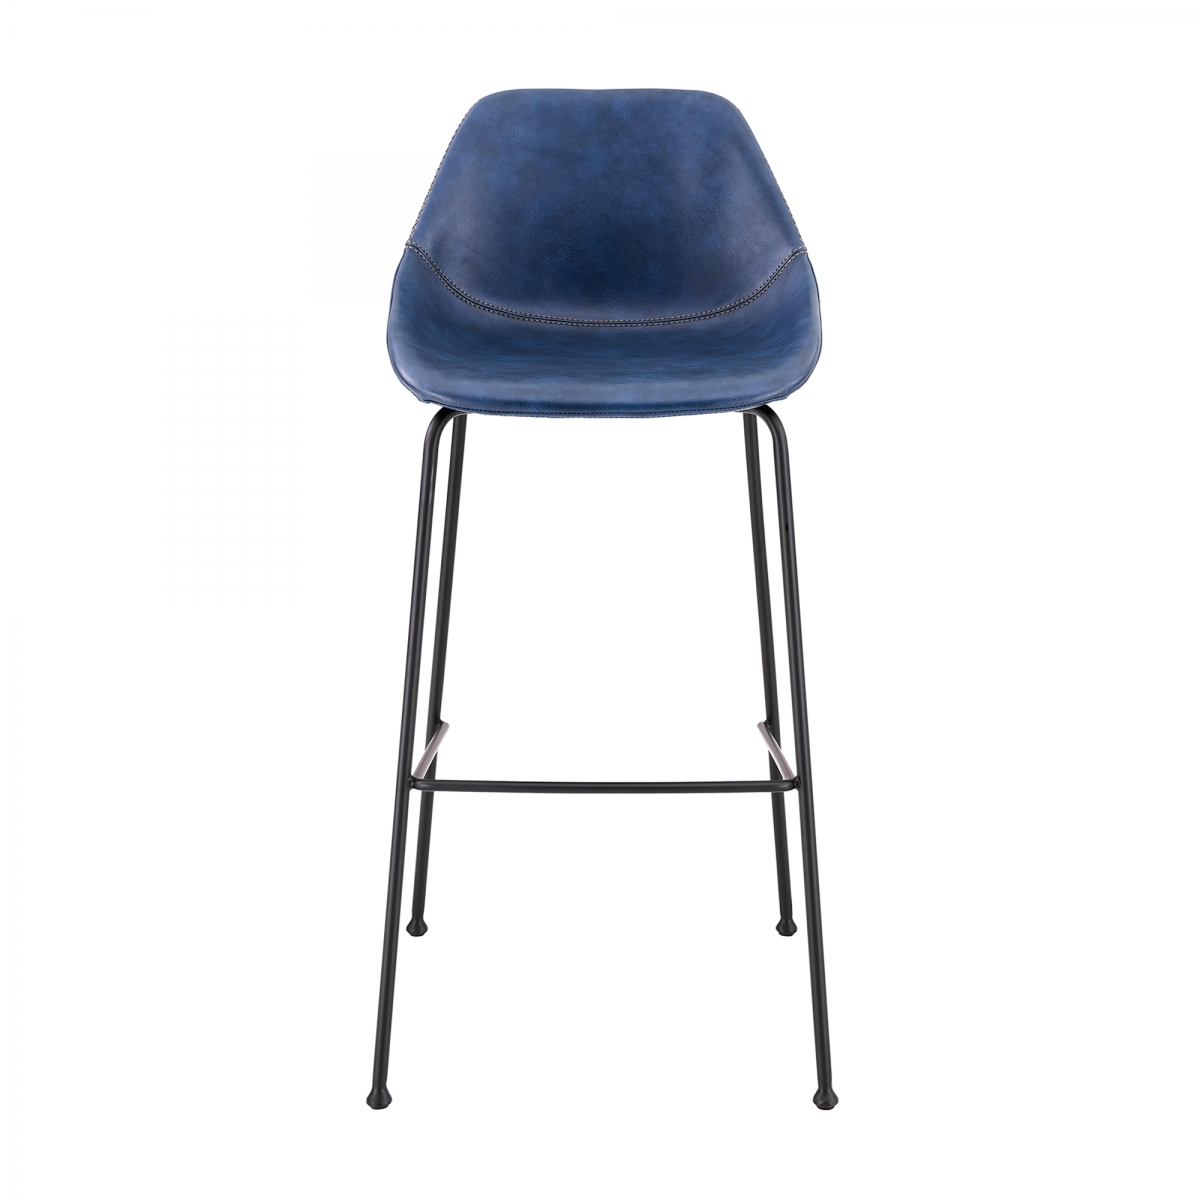 Corinna Bar Stool